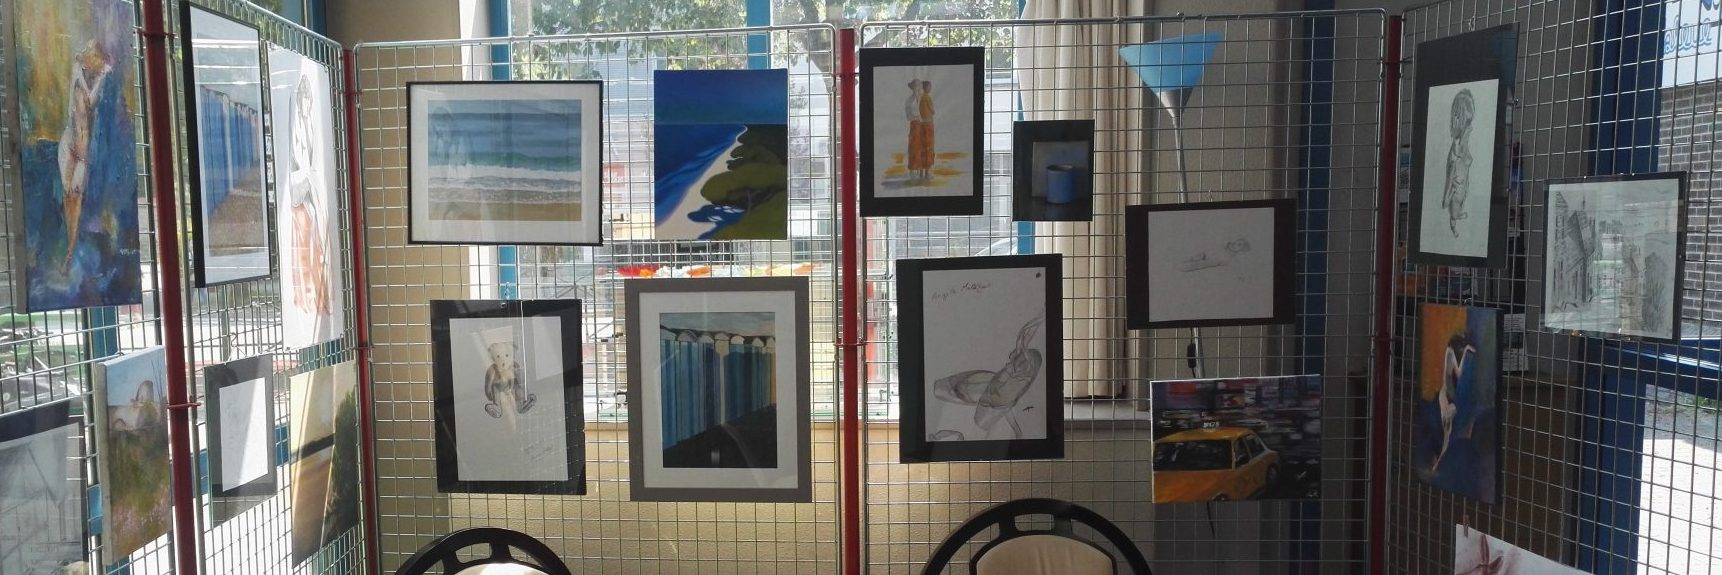 Expositions d'ateliers